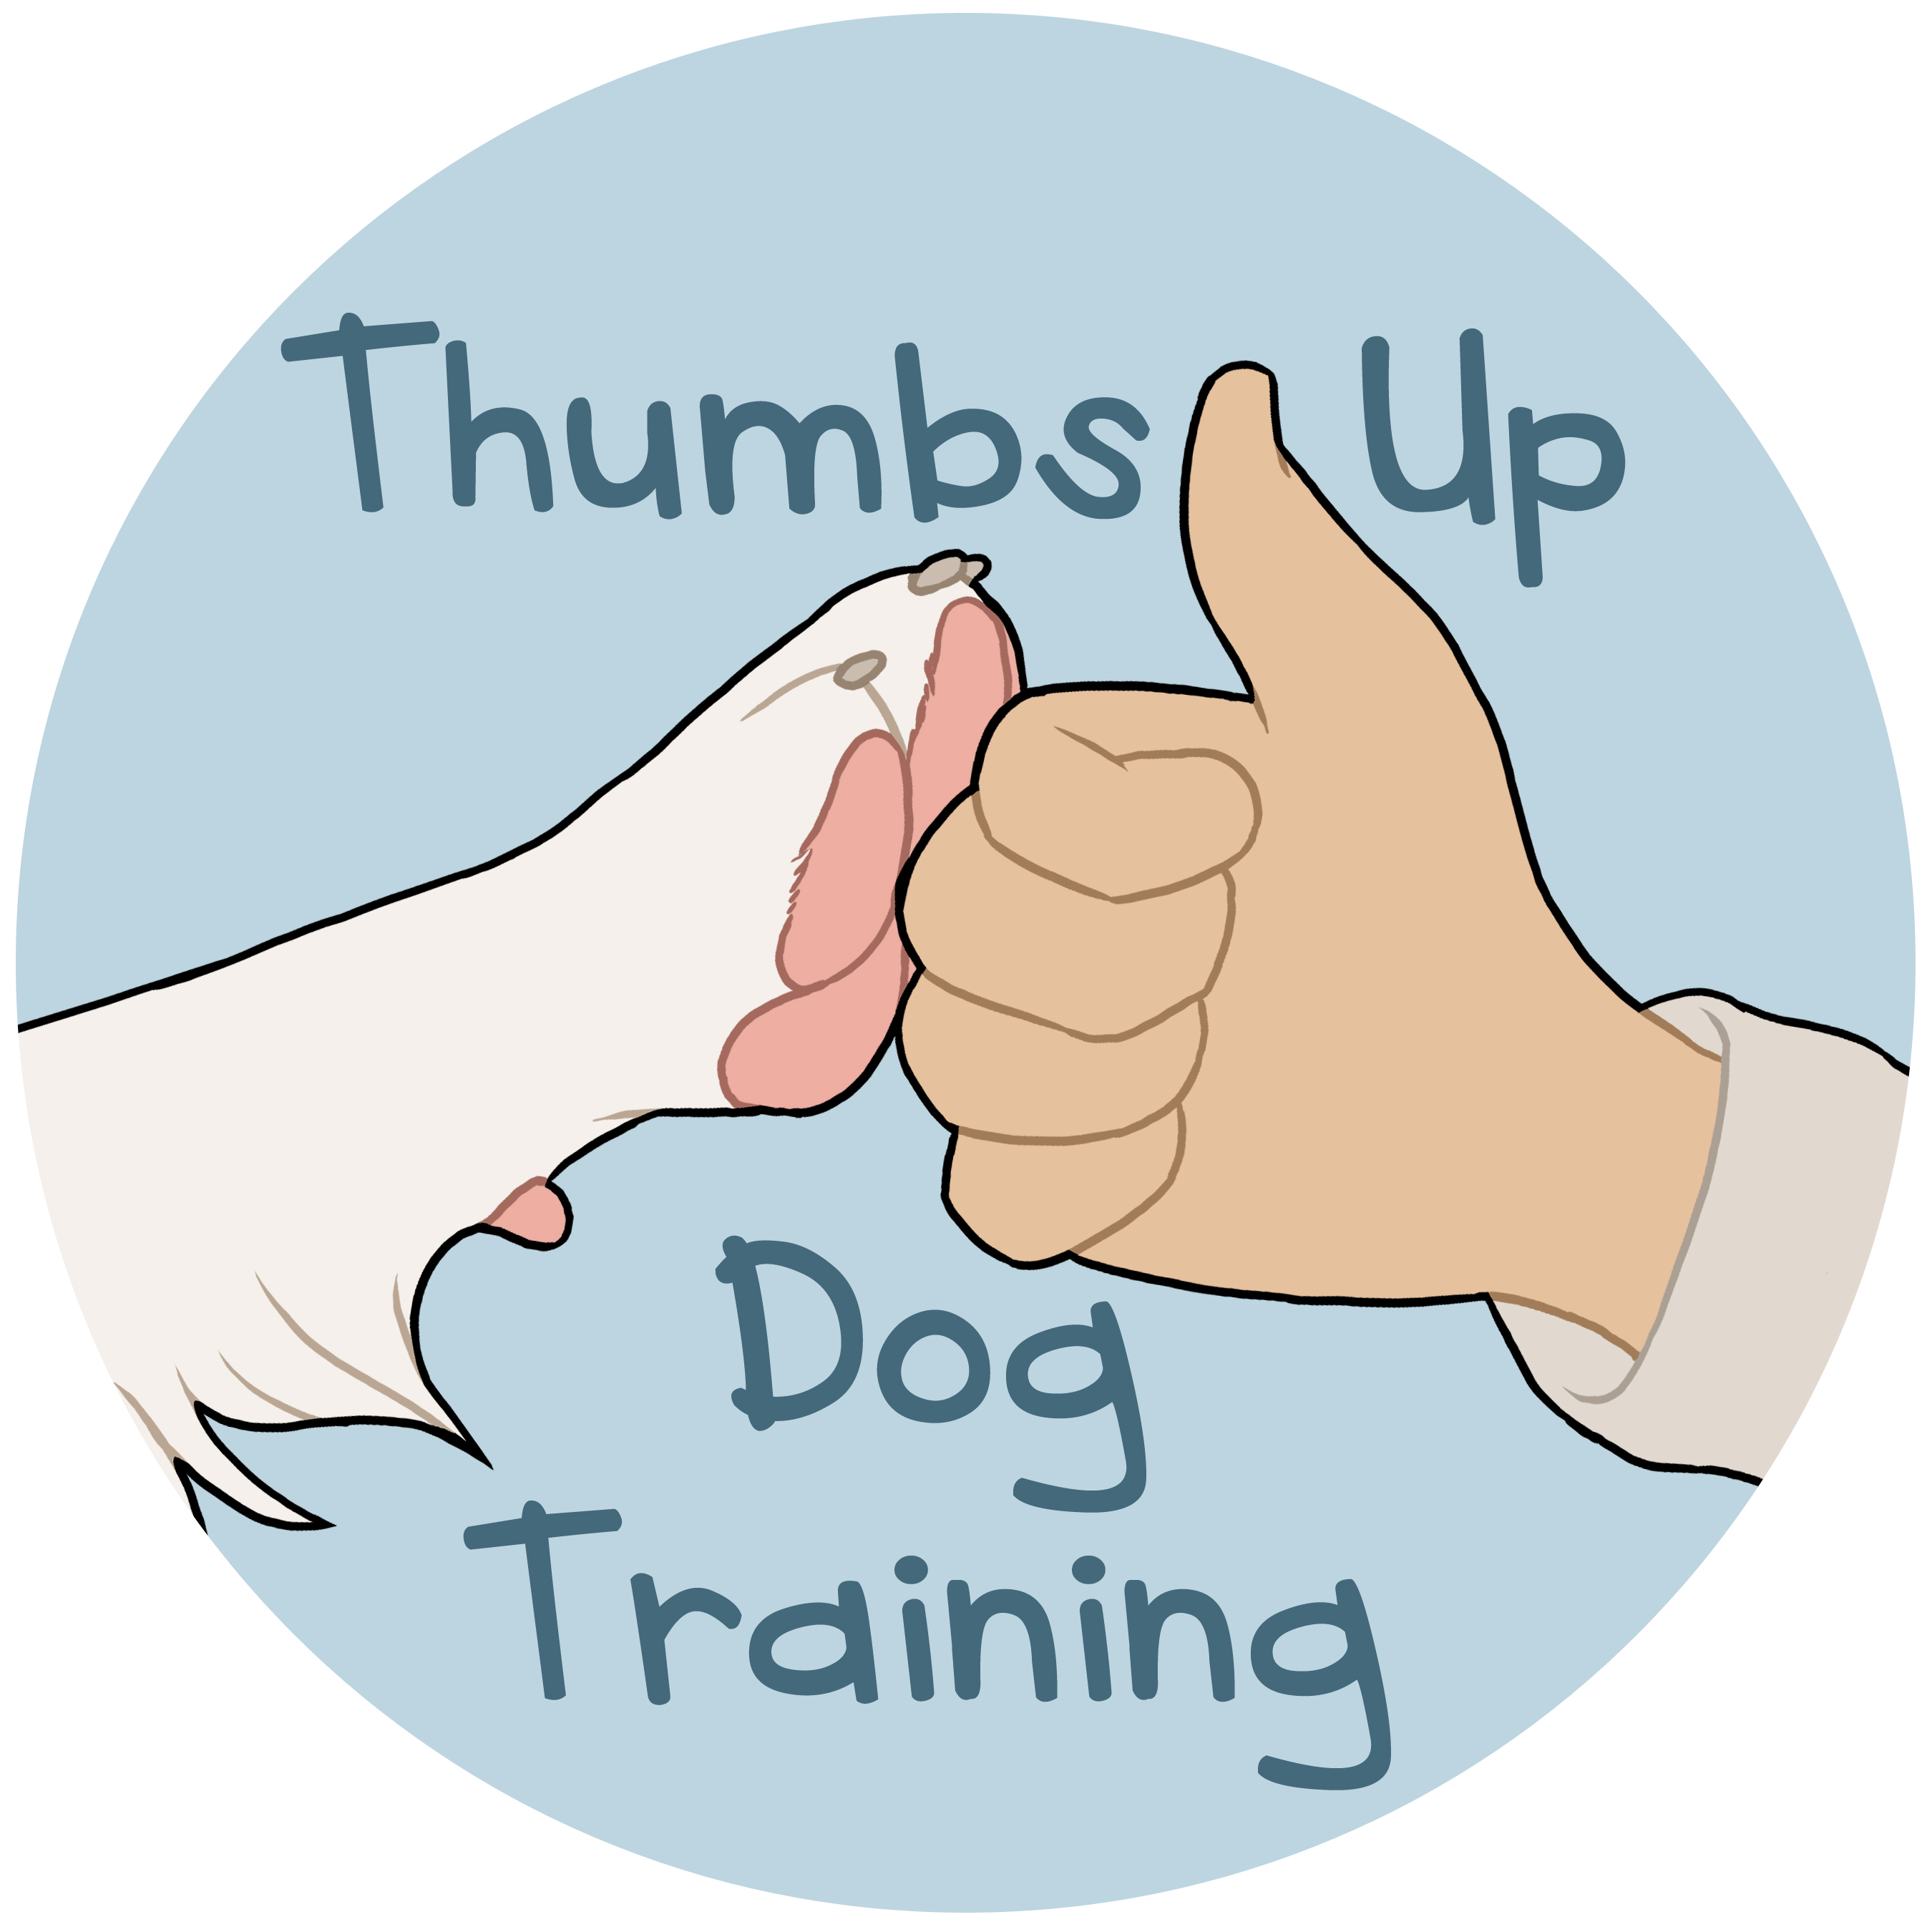 thumbs up training3